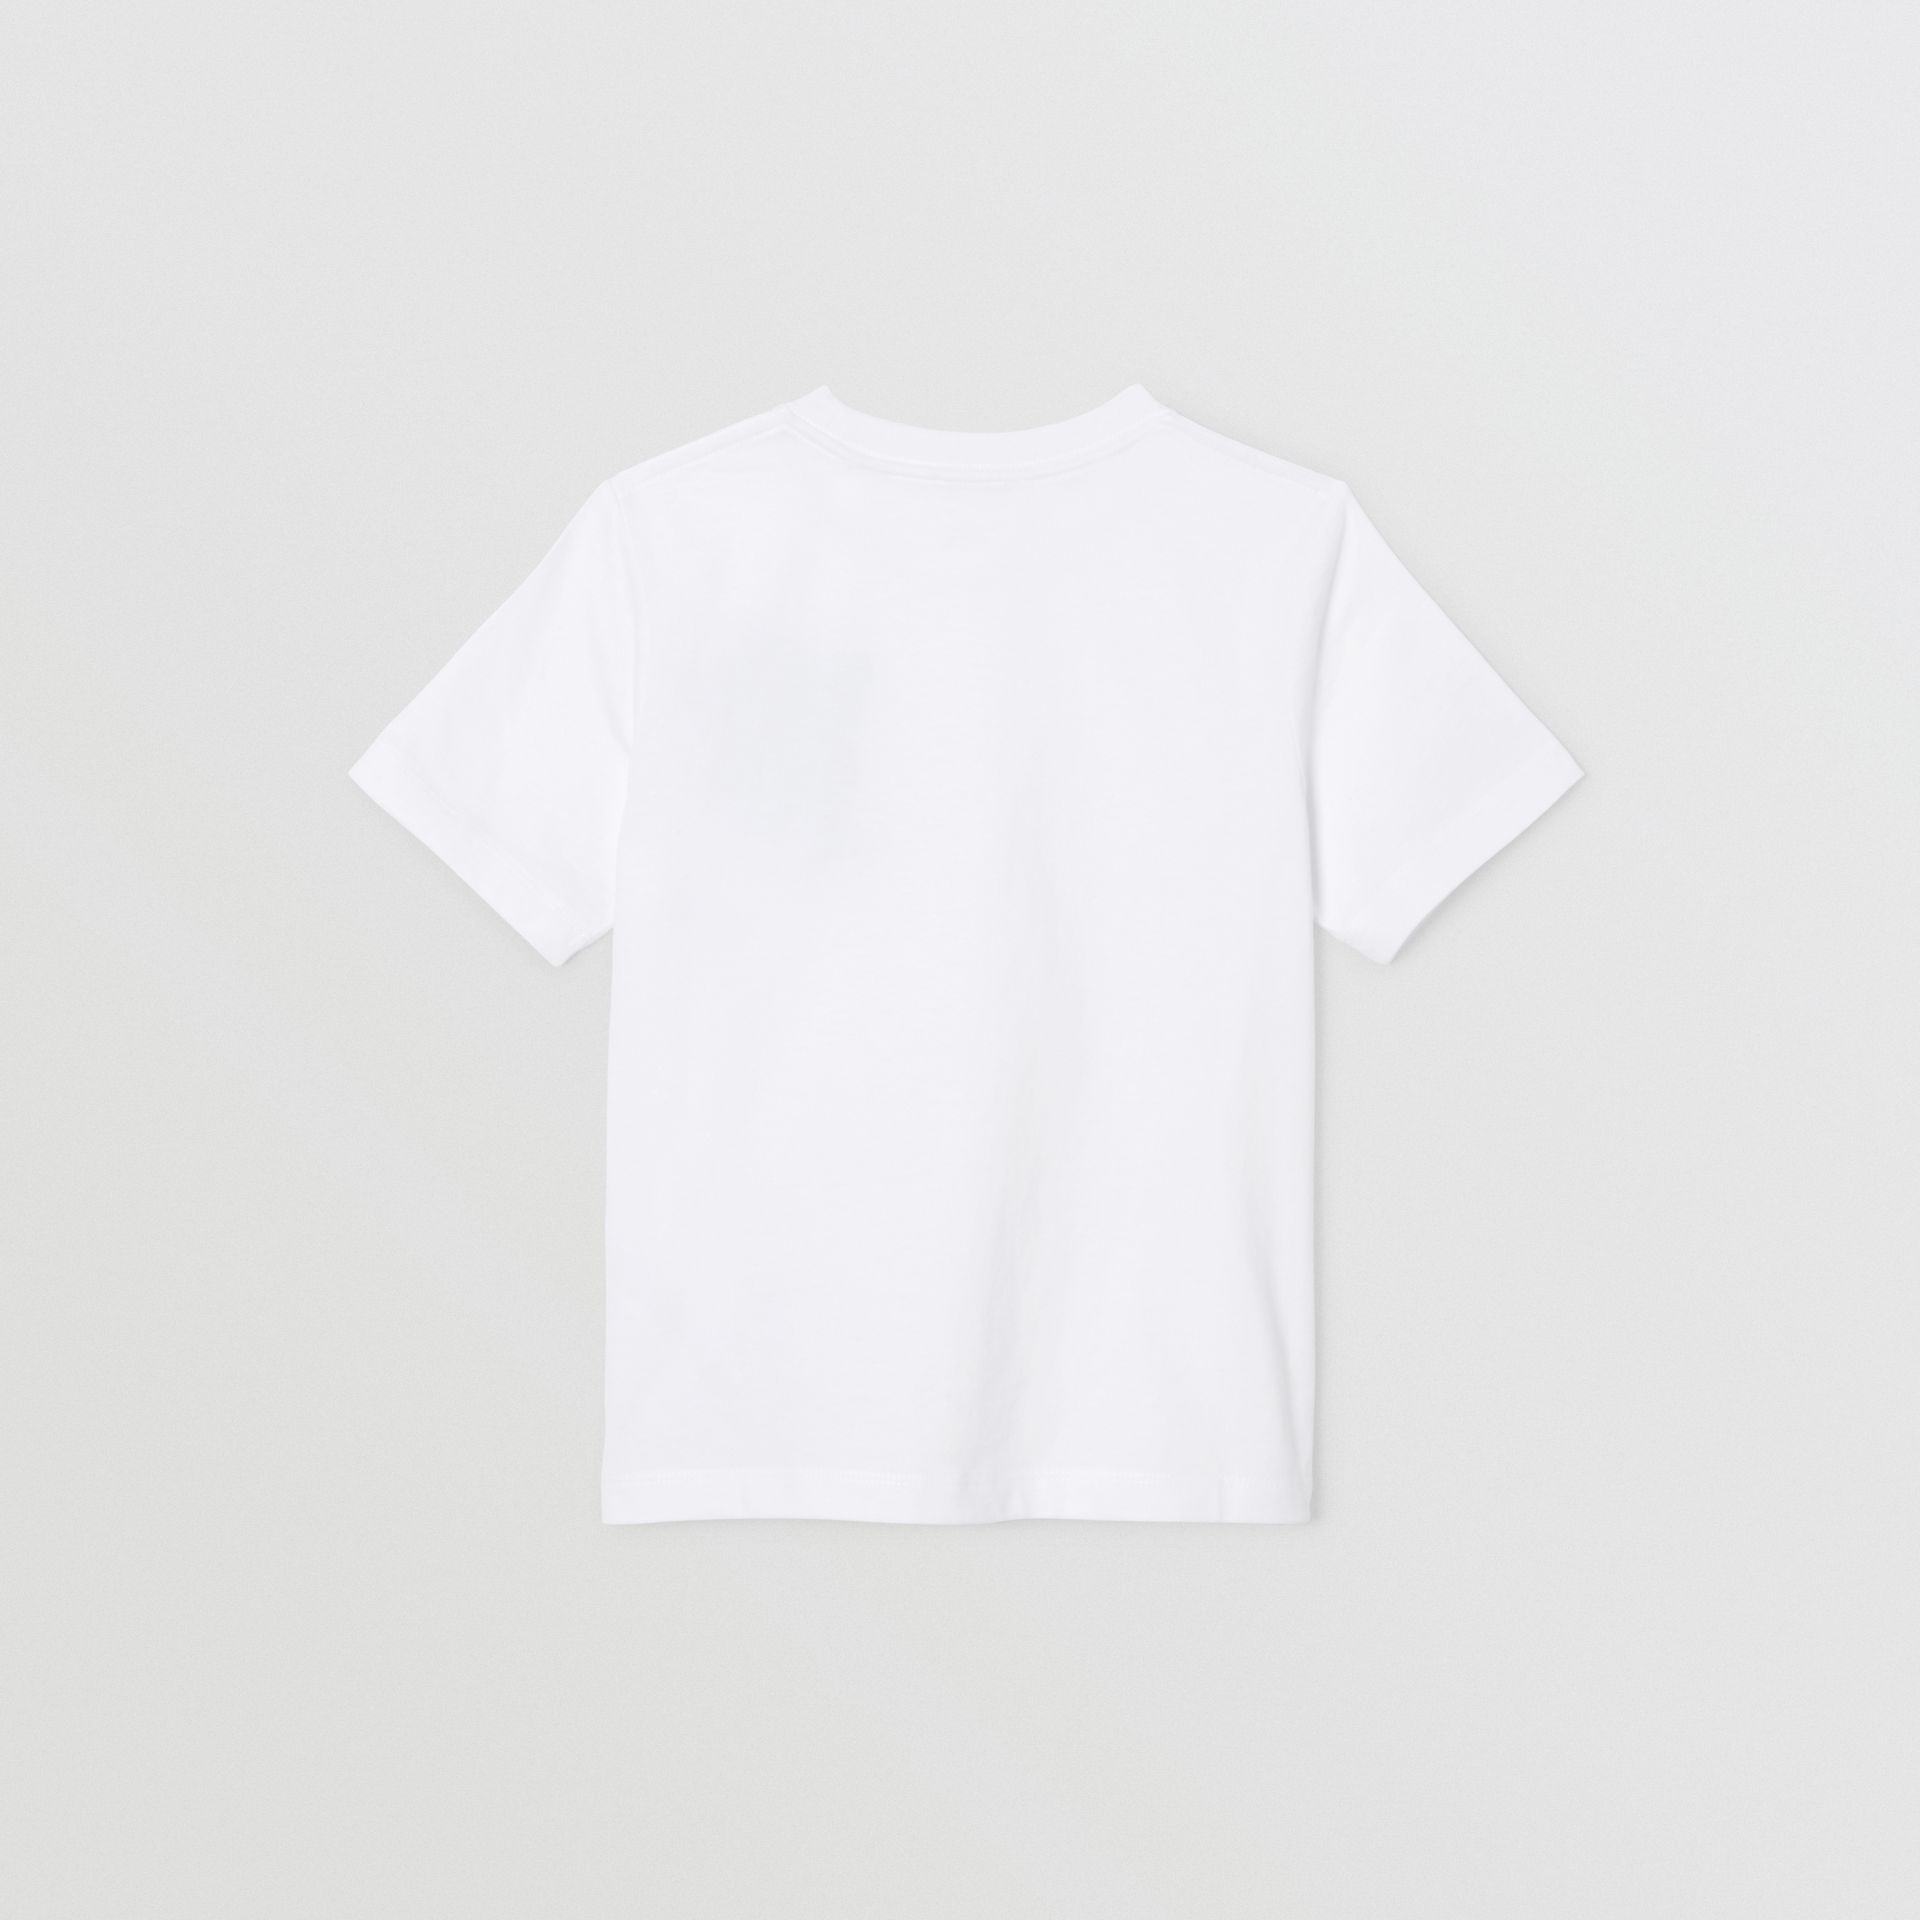 Monogram Motif Cotton T-shirt in White | Burberry - gallery image 4